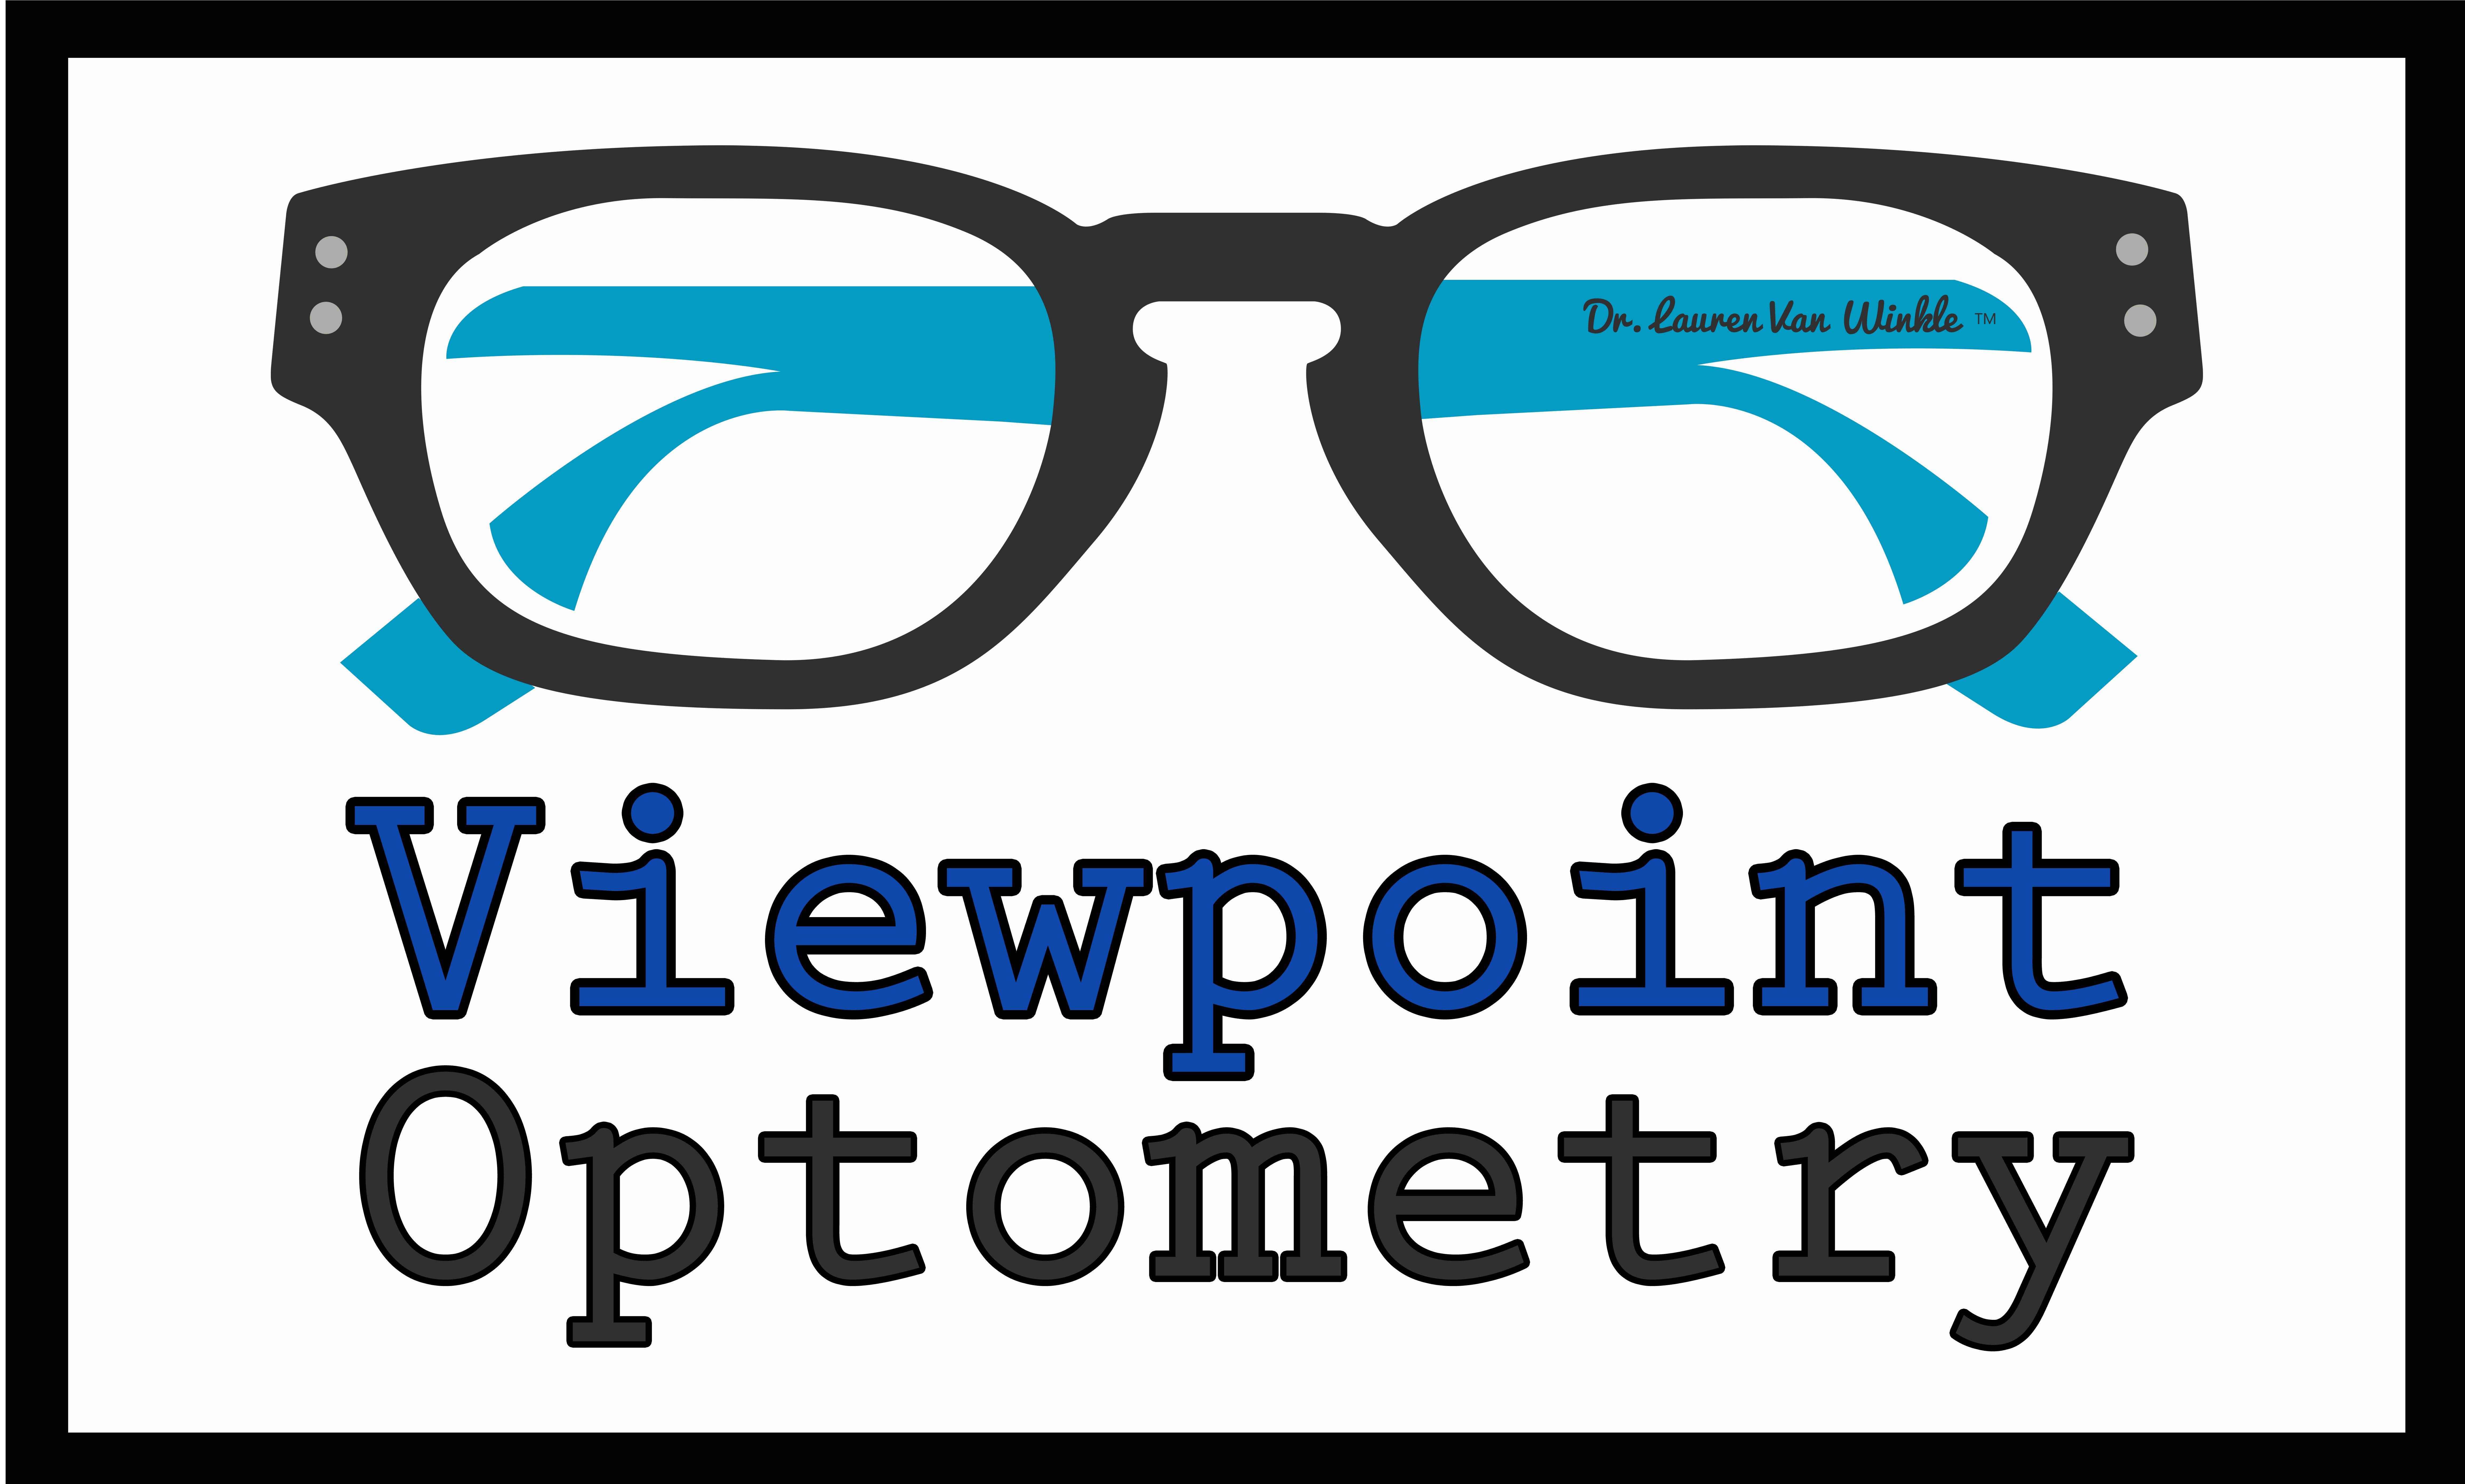 Viewpoint Optometry